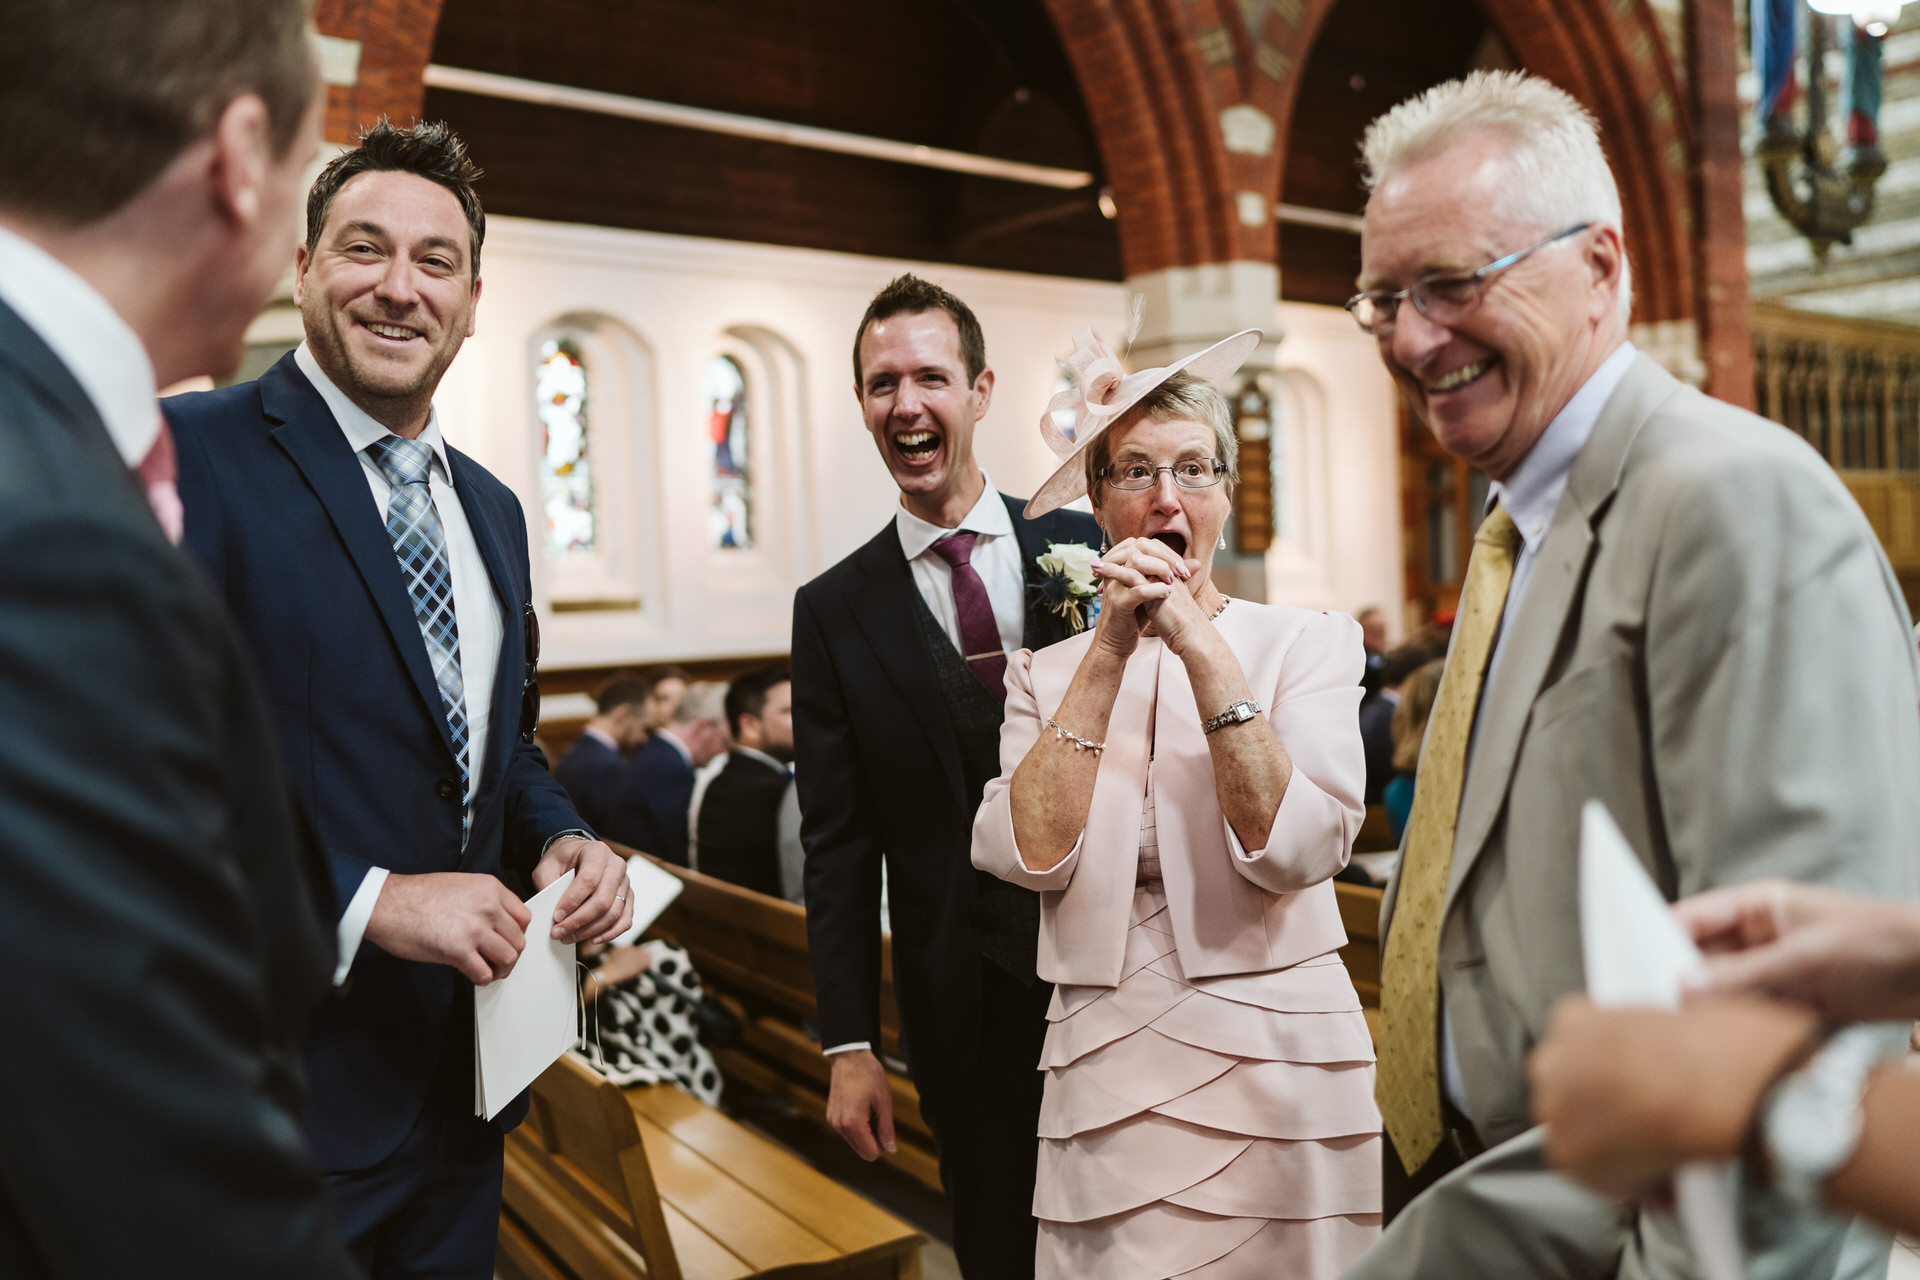 Karen Flower, of Surrey, is a wedding photographer for St Andrew's Church